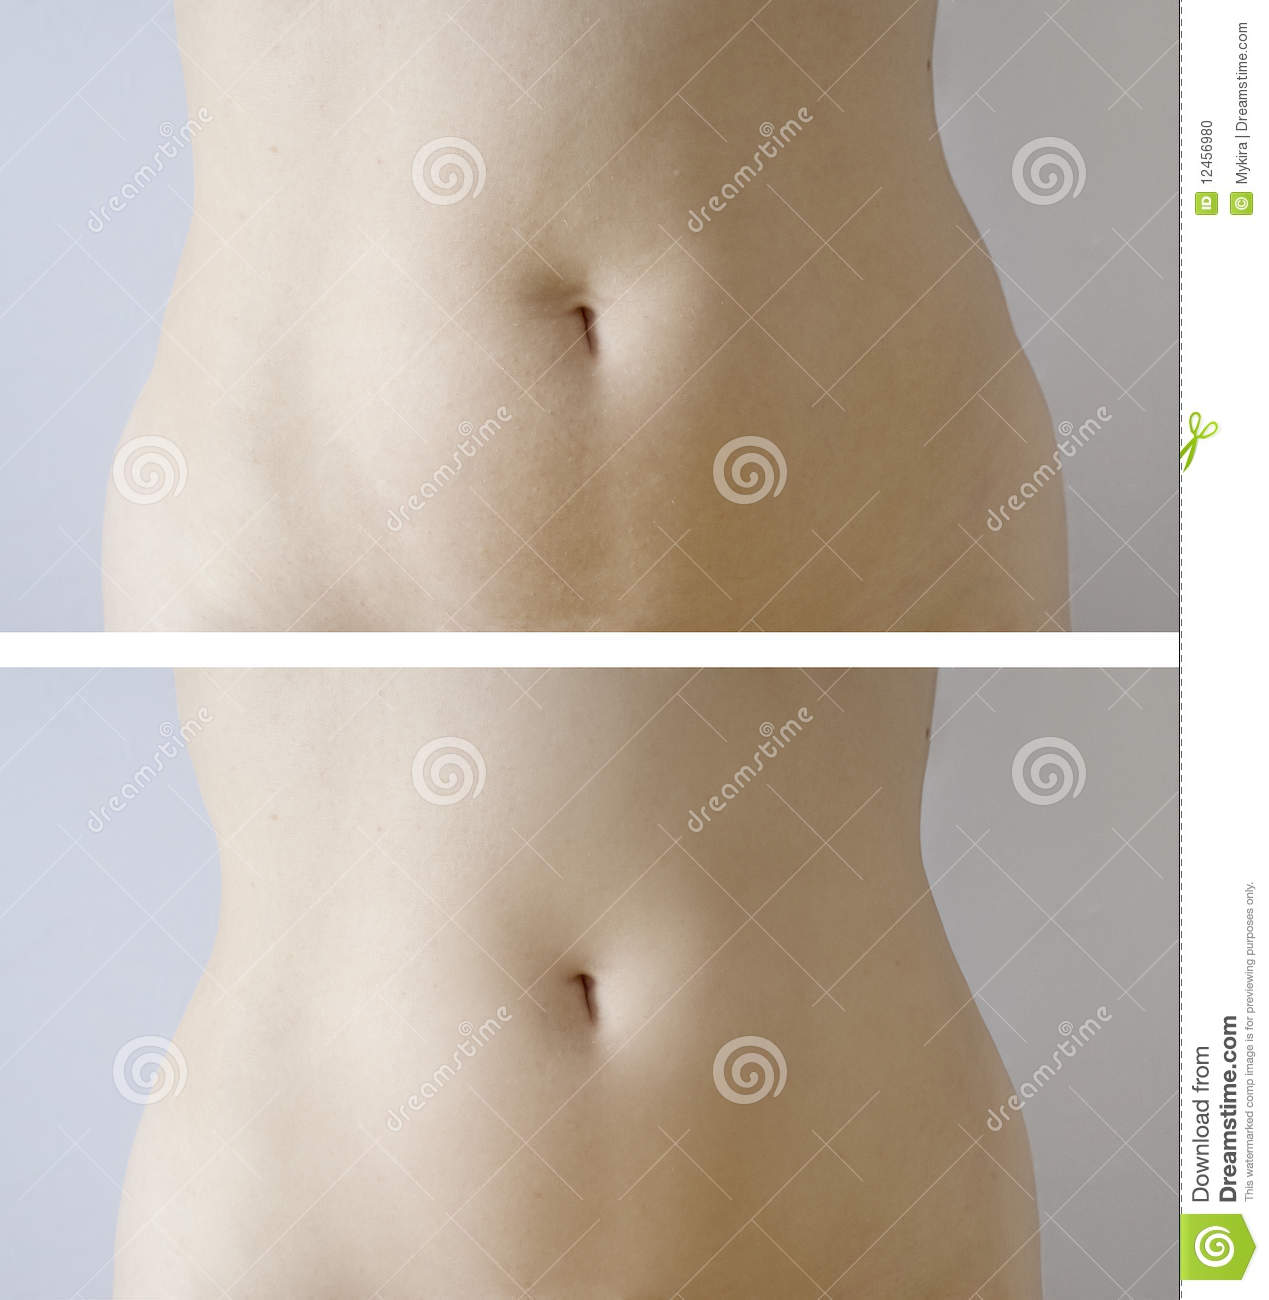 Slimming : before-after